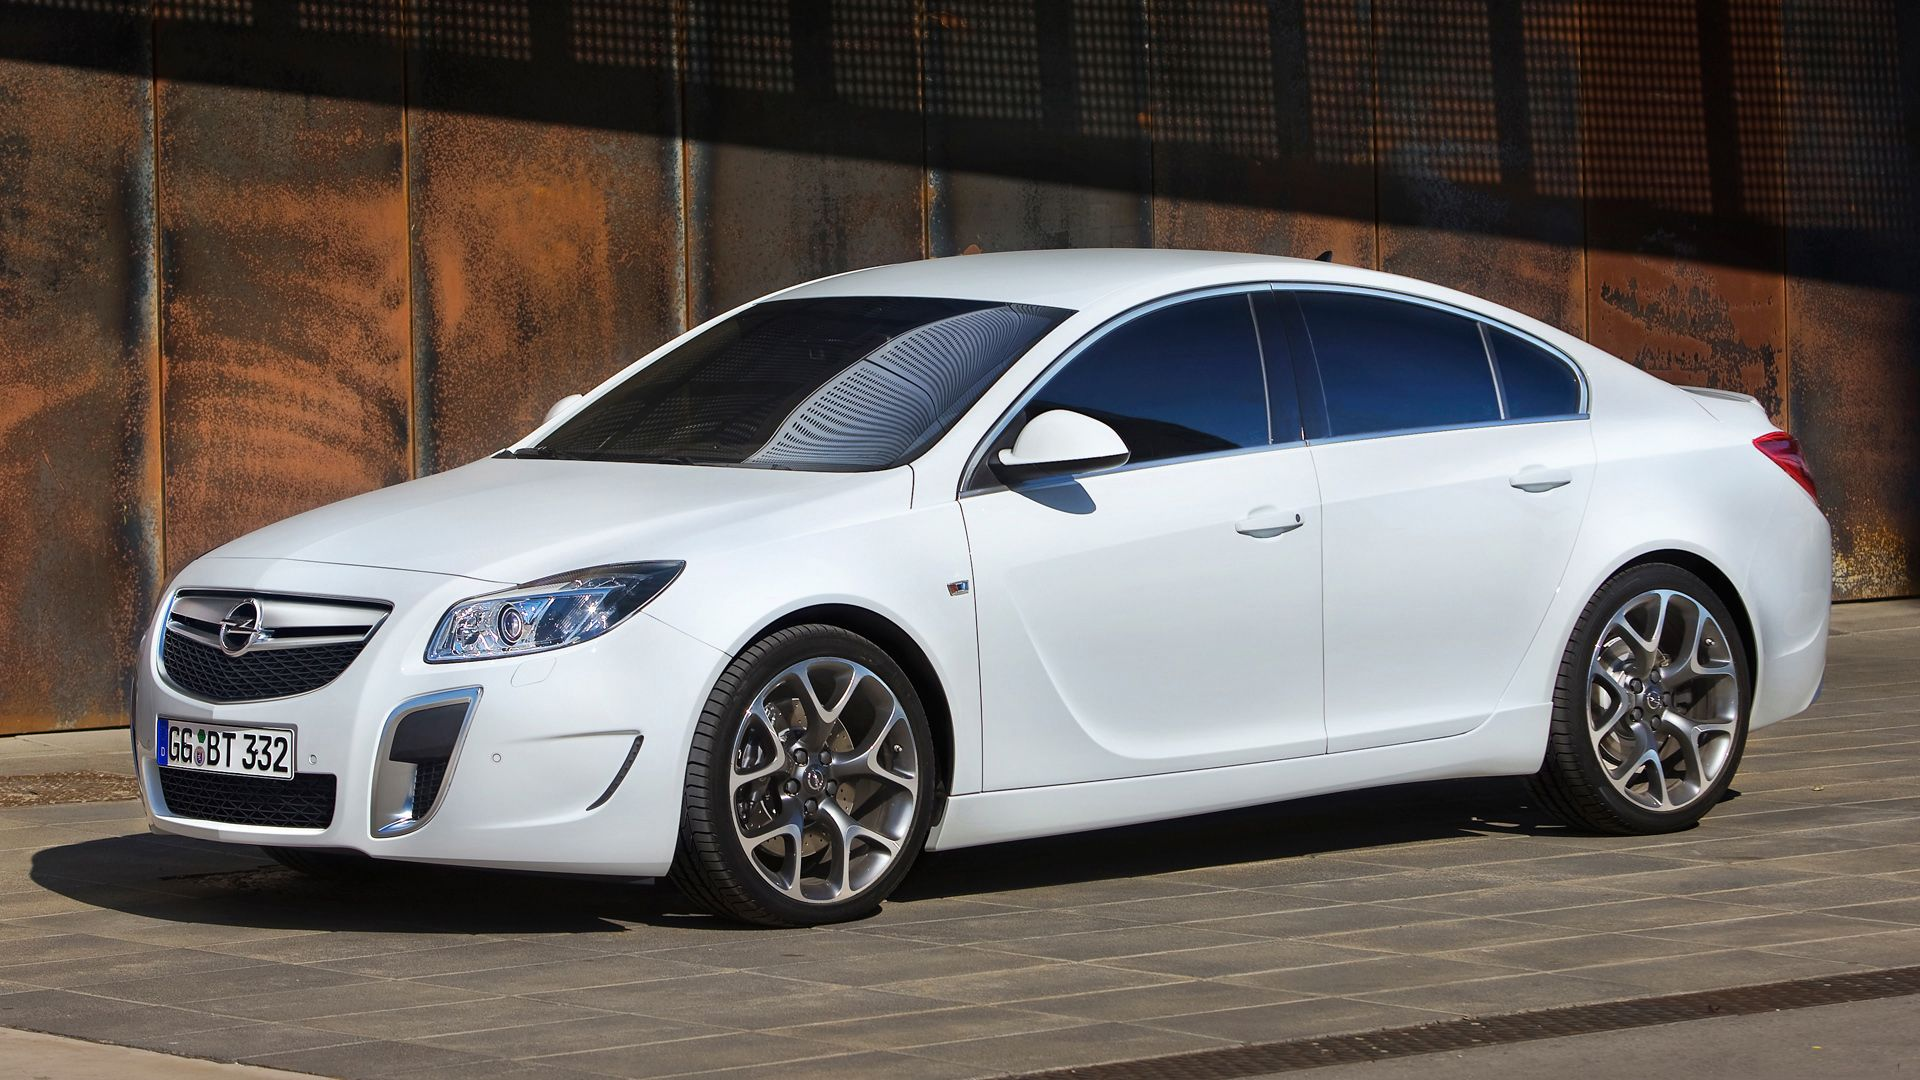 Awesome opel insignia opc wallpaper hd pozadine